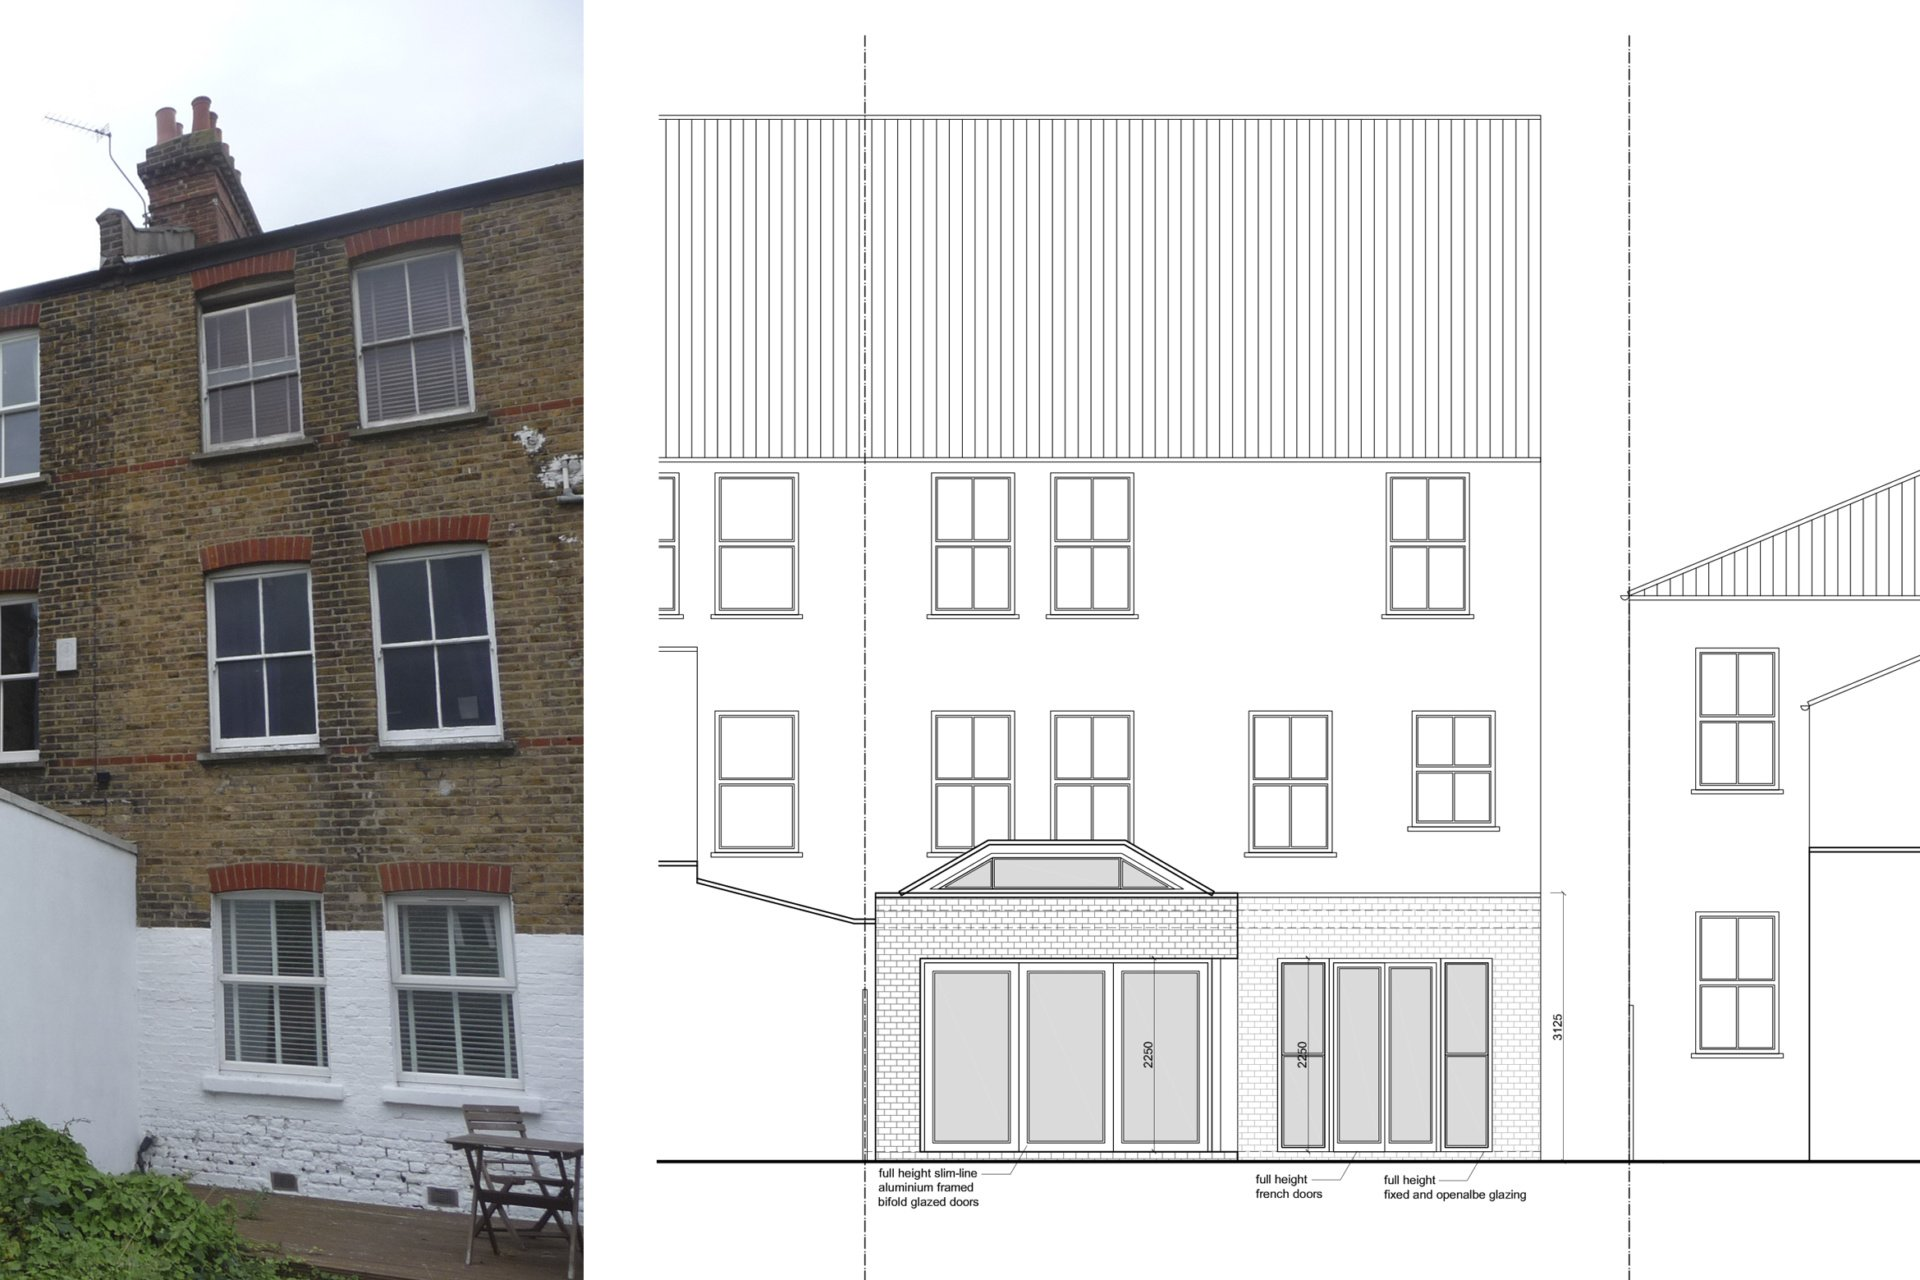 Architect designed garden flat extension Tooting Broadway Wandsworth SW17 Rear elevation 1 Tooting Broadway, Wandsworth SW17 | Garden flat extension